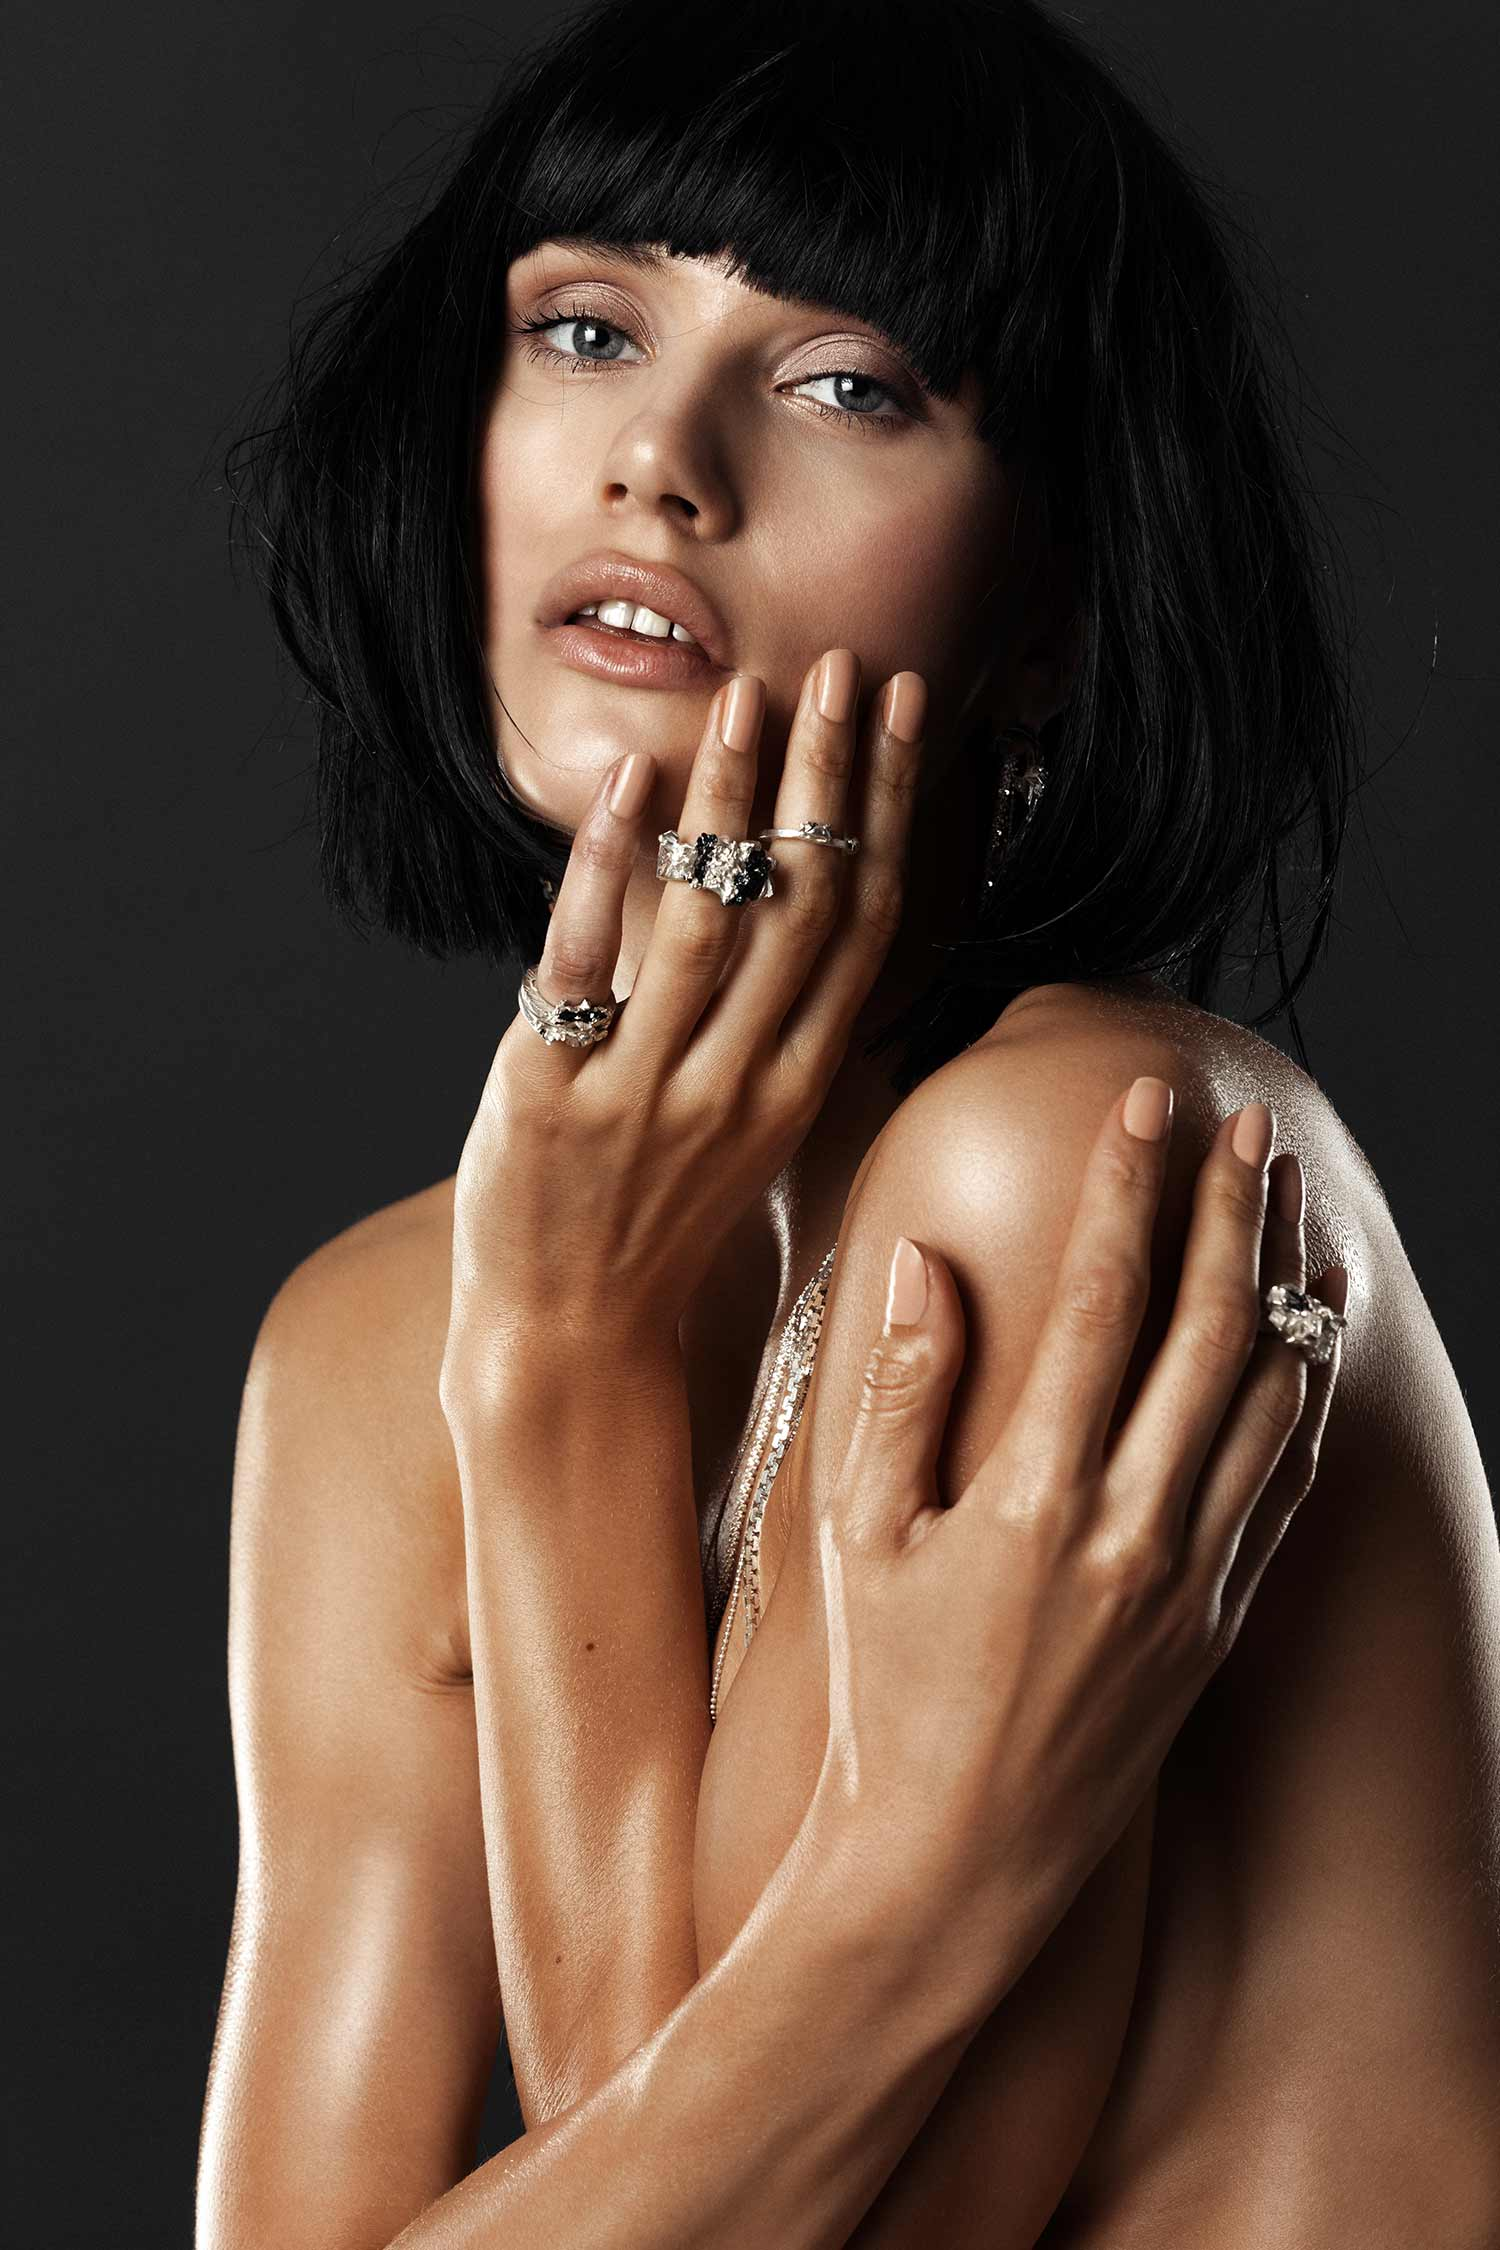 Model wearing ZYDRUNE Anomaly rings available to purchase at Harvey Nichols.